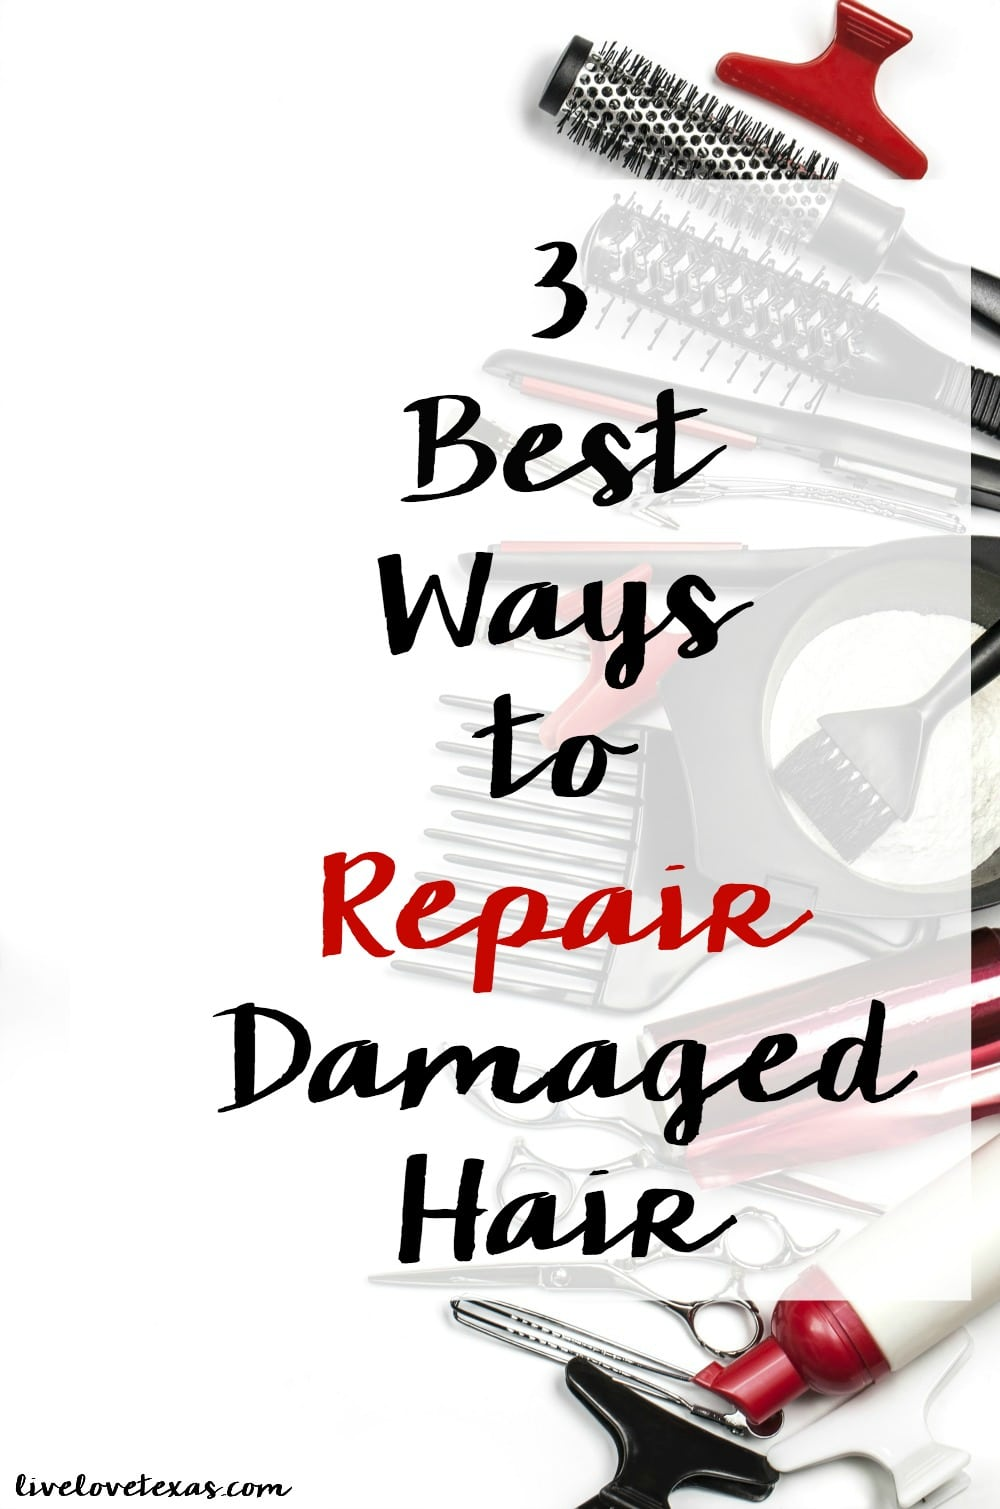 3 Best Ways to Repair Damaged Hair